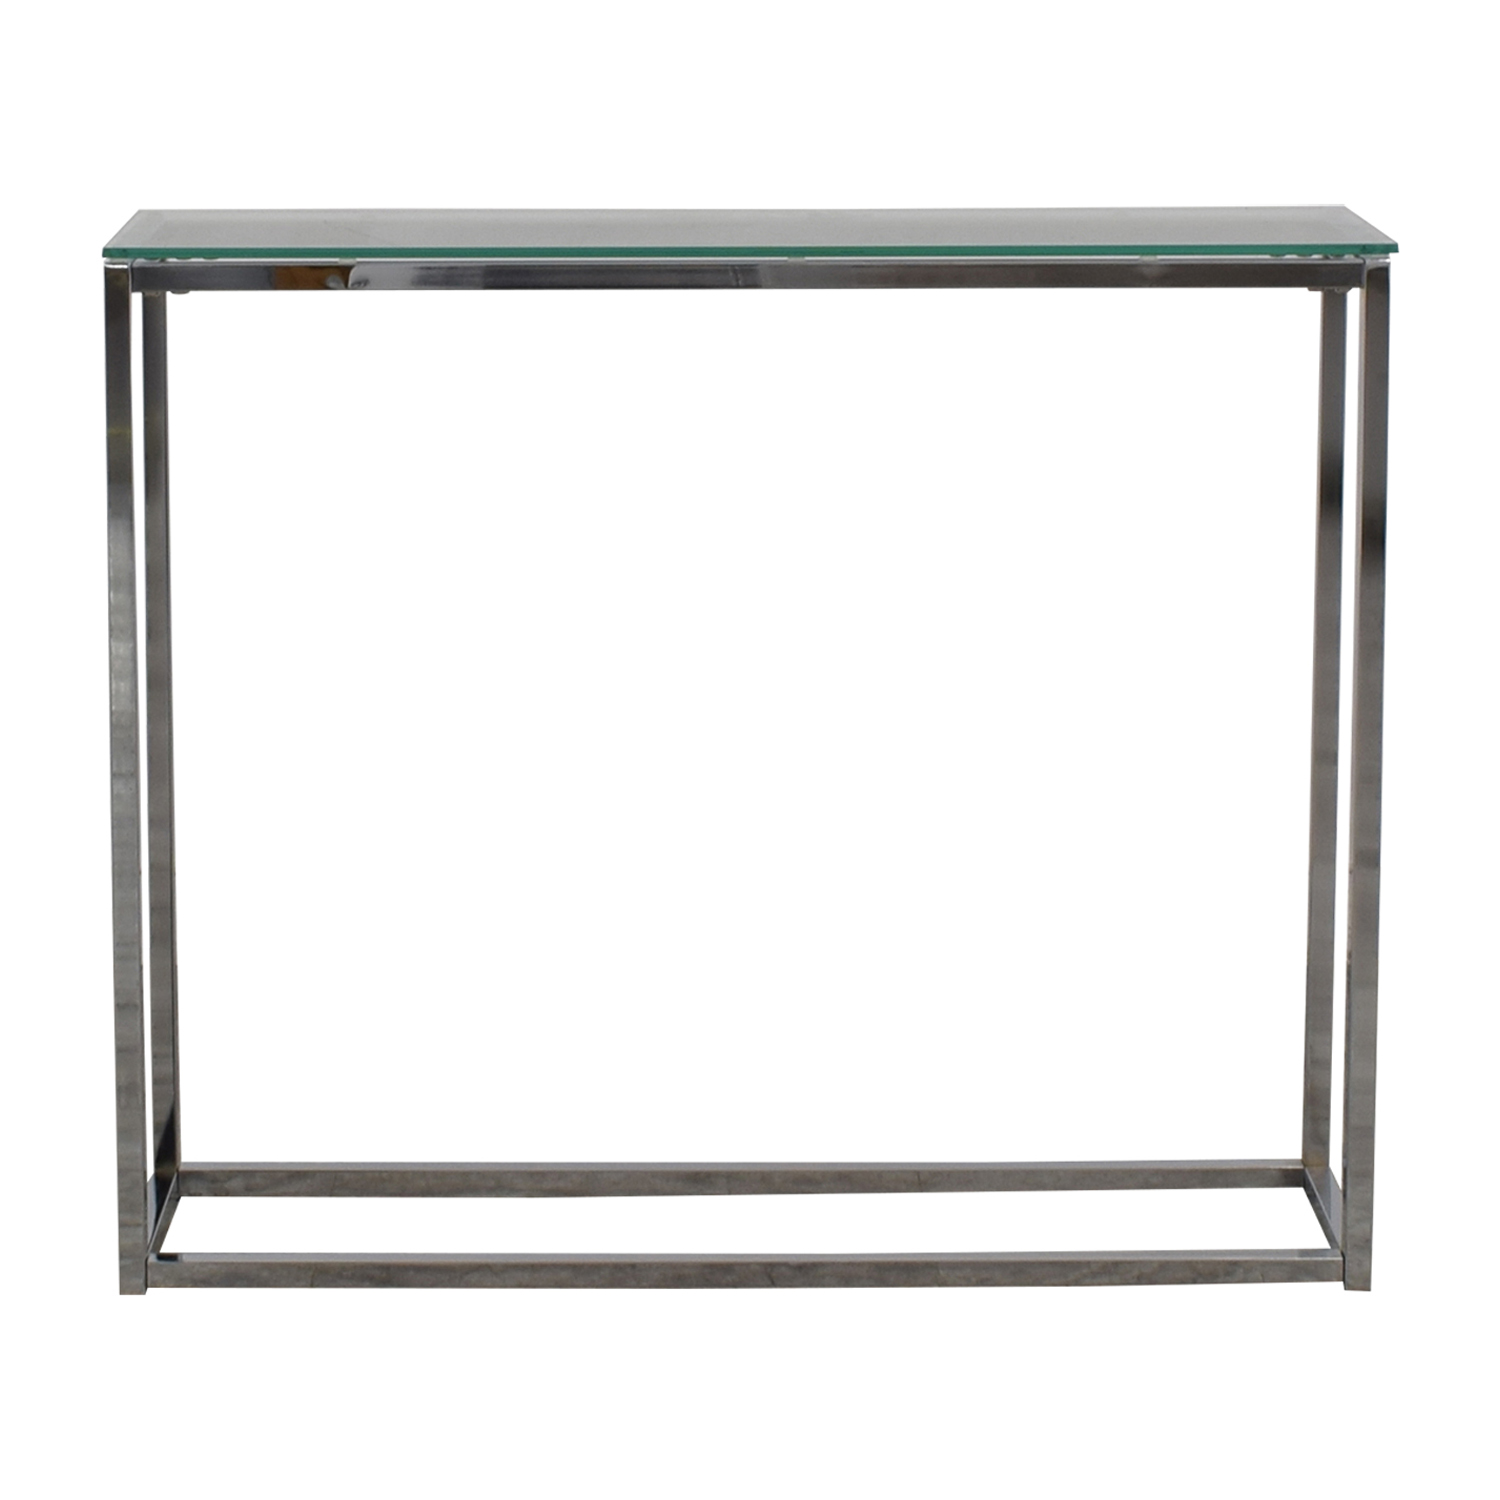 Wayfair Wayfair Glass and Chrome Console Table second hand